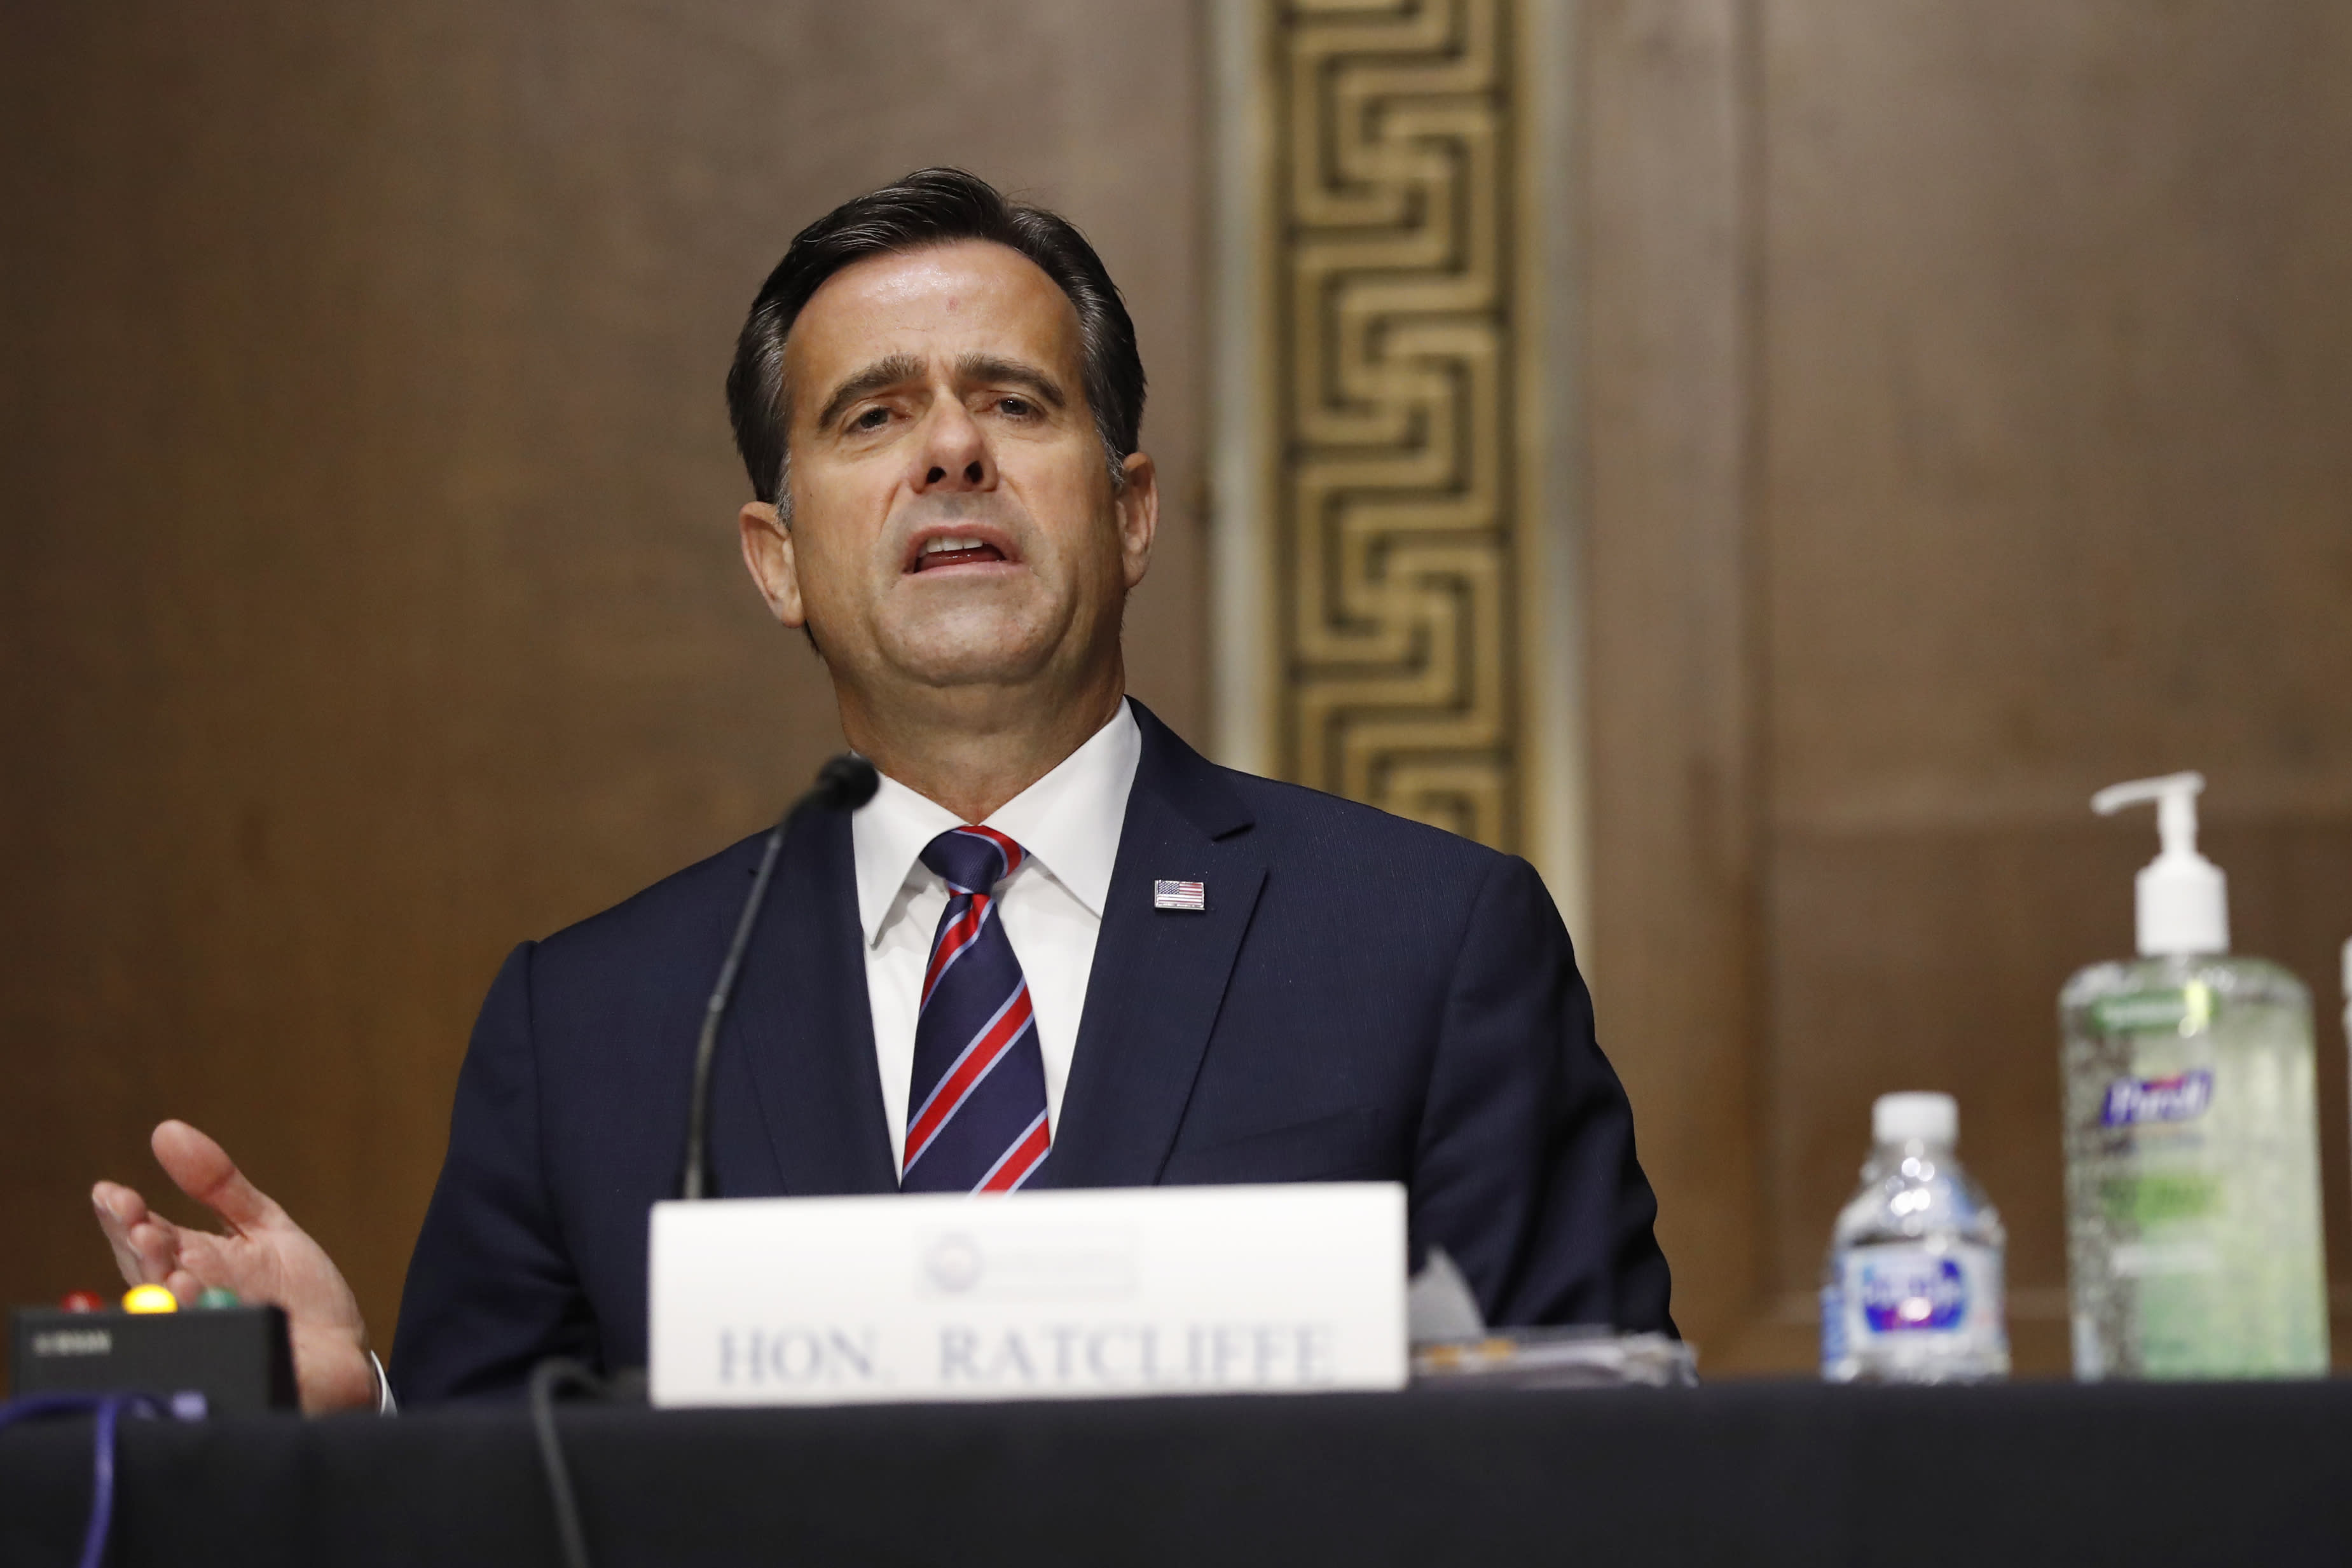 Senate Intelligence Committee Holds Nomination Hearing For John L. Ratcliffe To Be Director Of National Intelligence